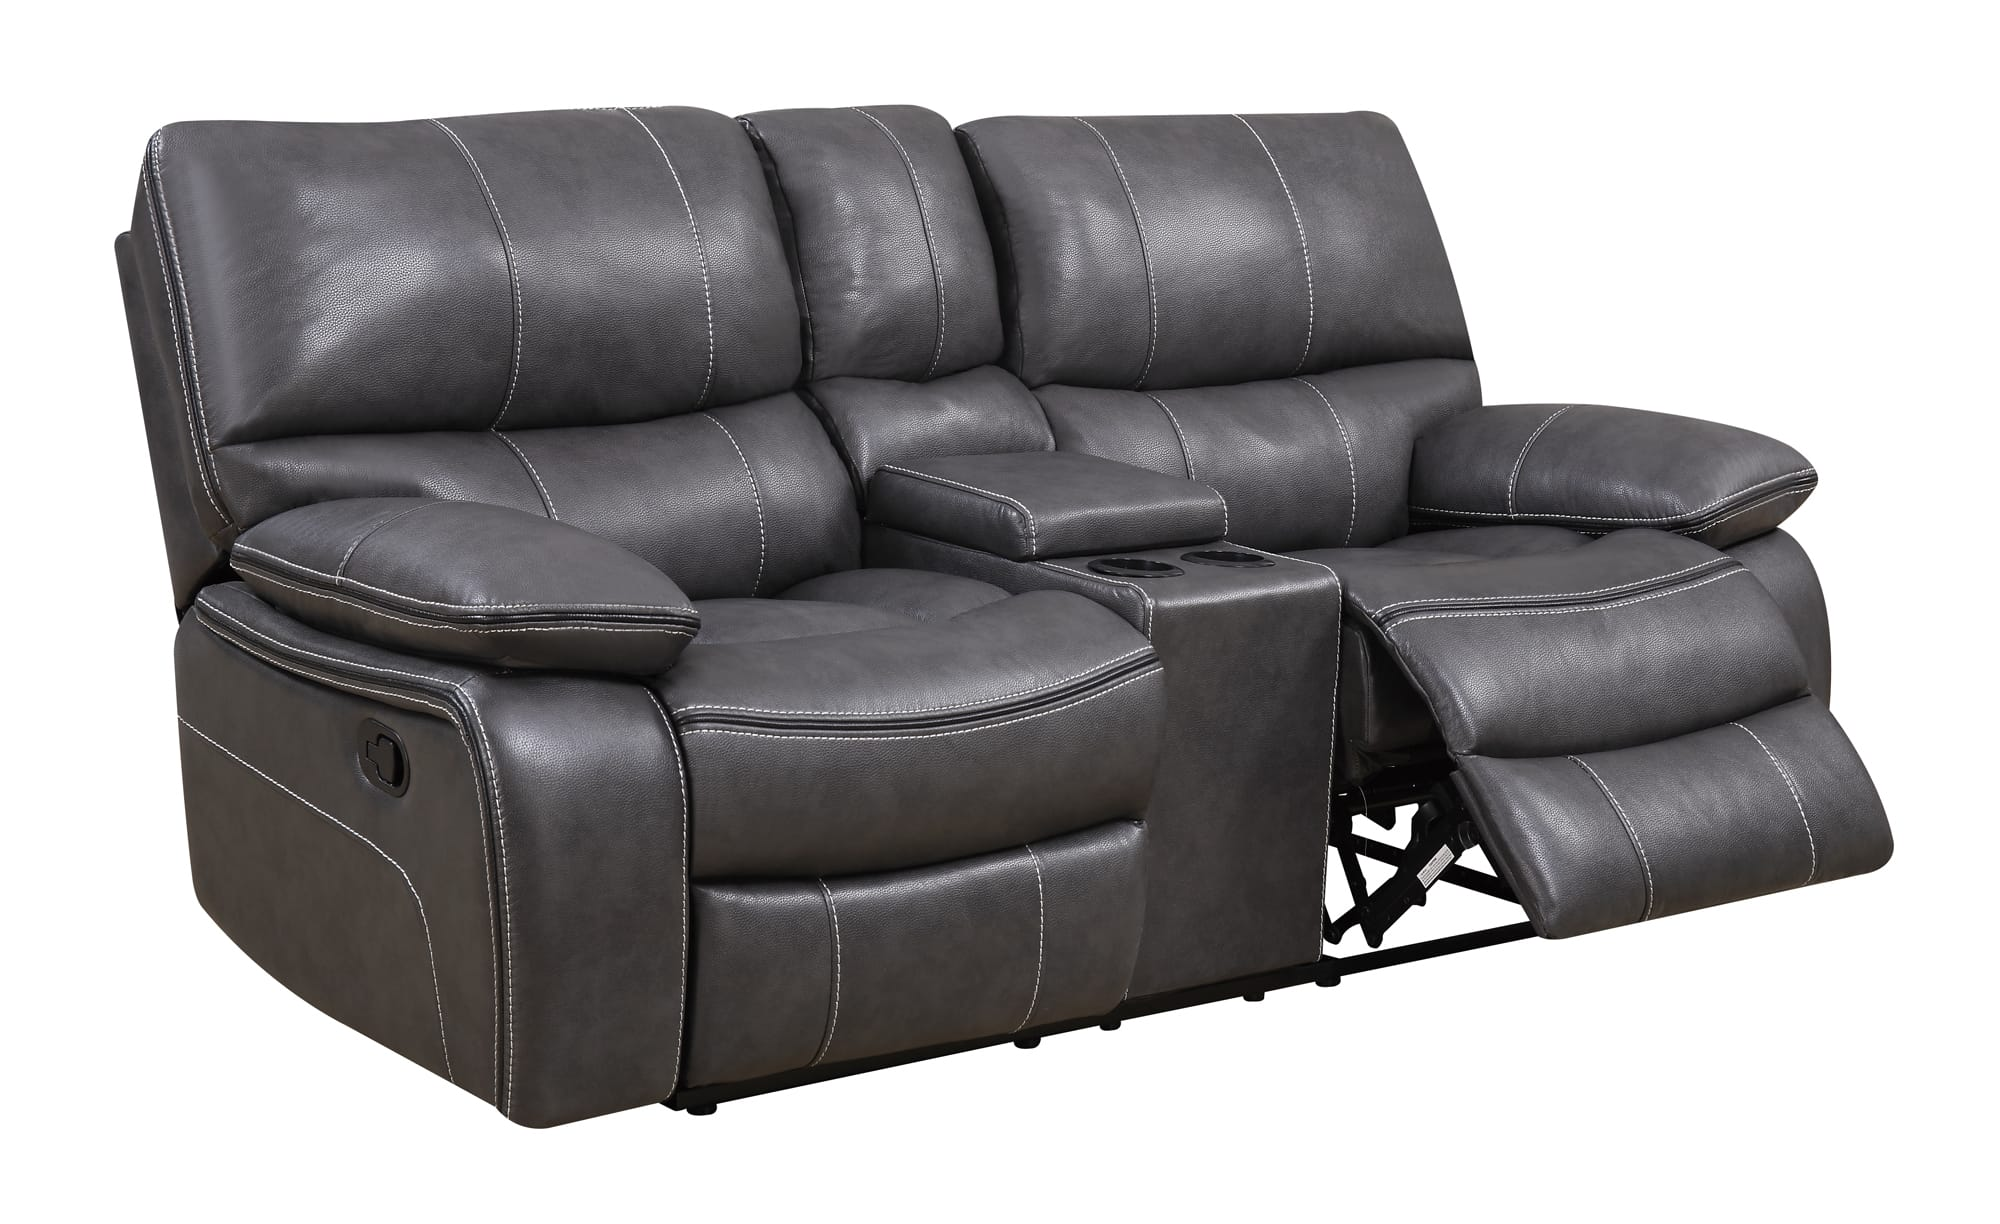 U0040 Grey Black Leather Console Reclining Loveseat By